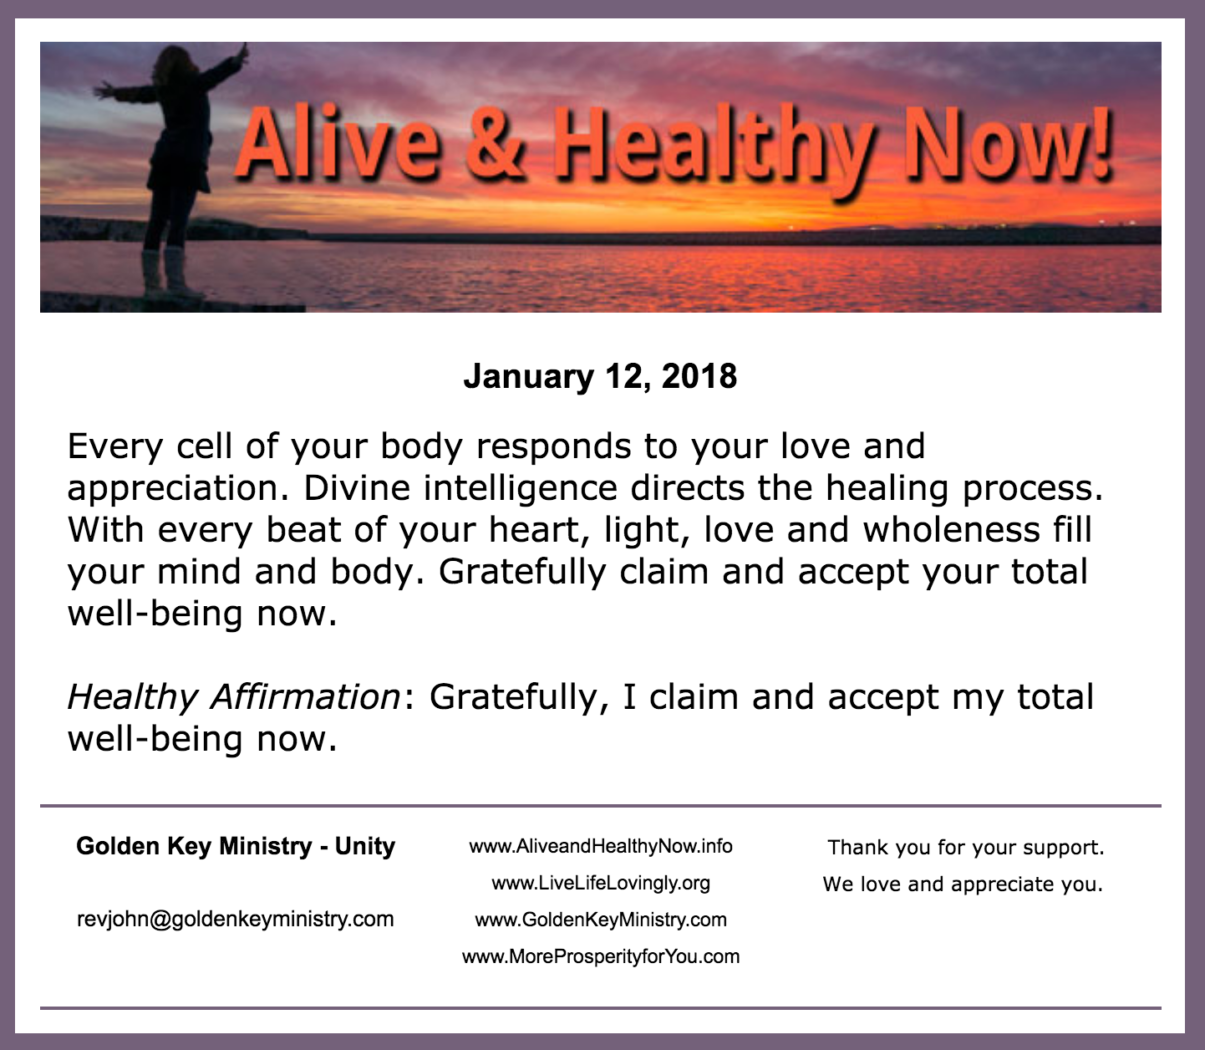 Alive and Healthy Now!